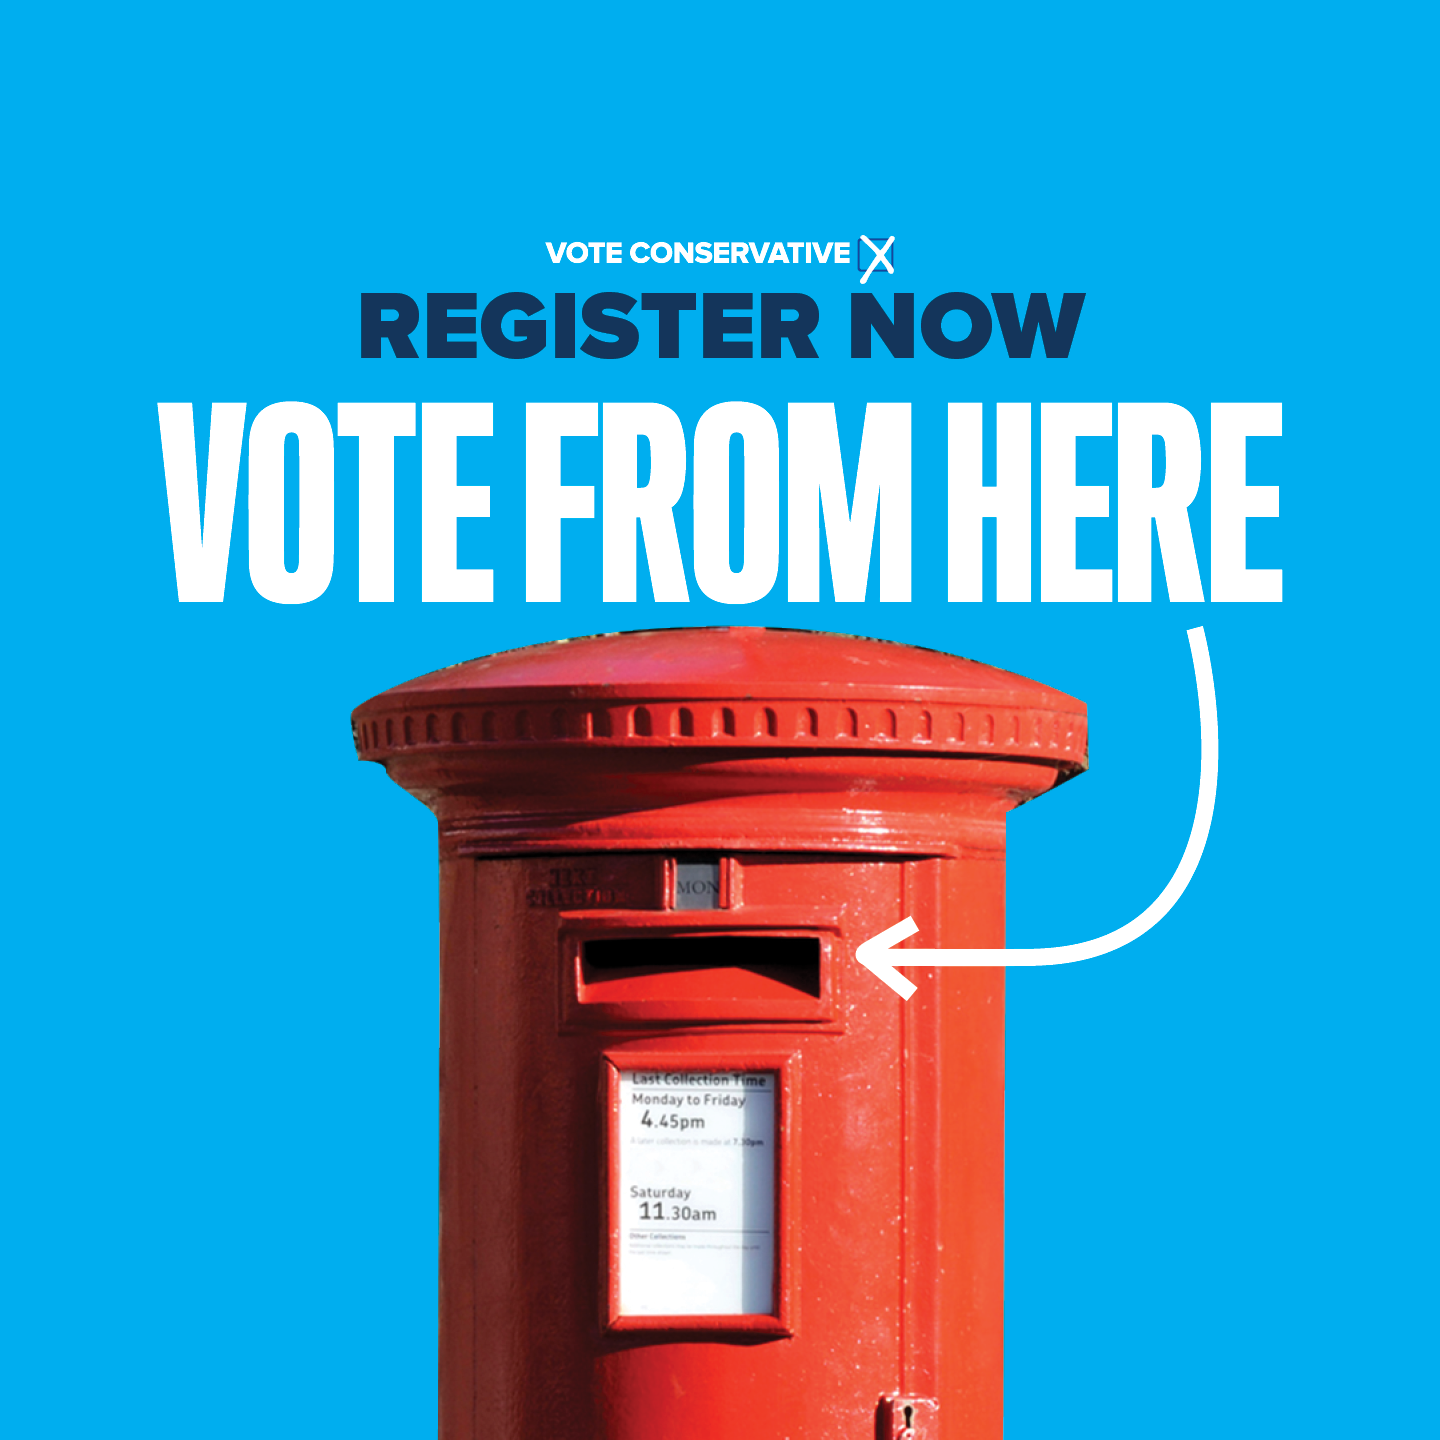 Apply for a postal vote today - then vote Conservative!